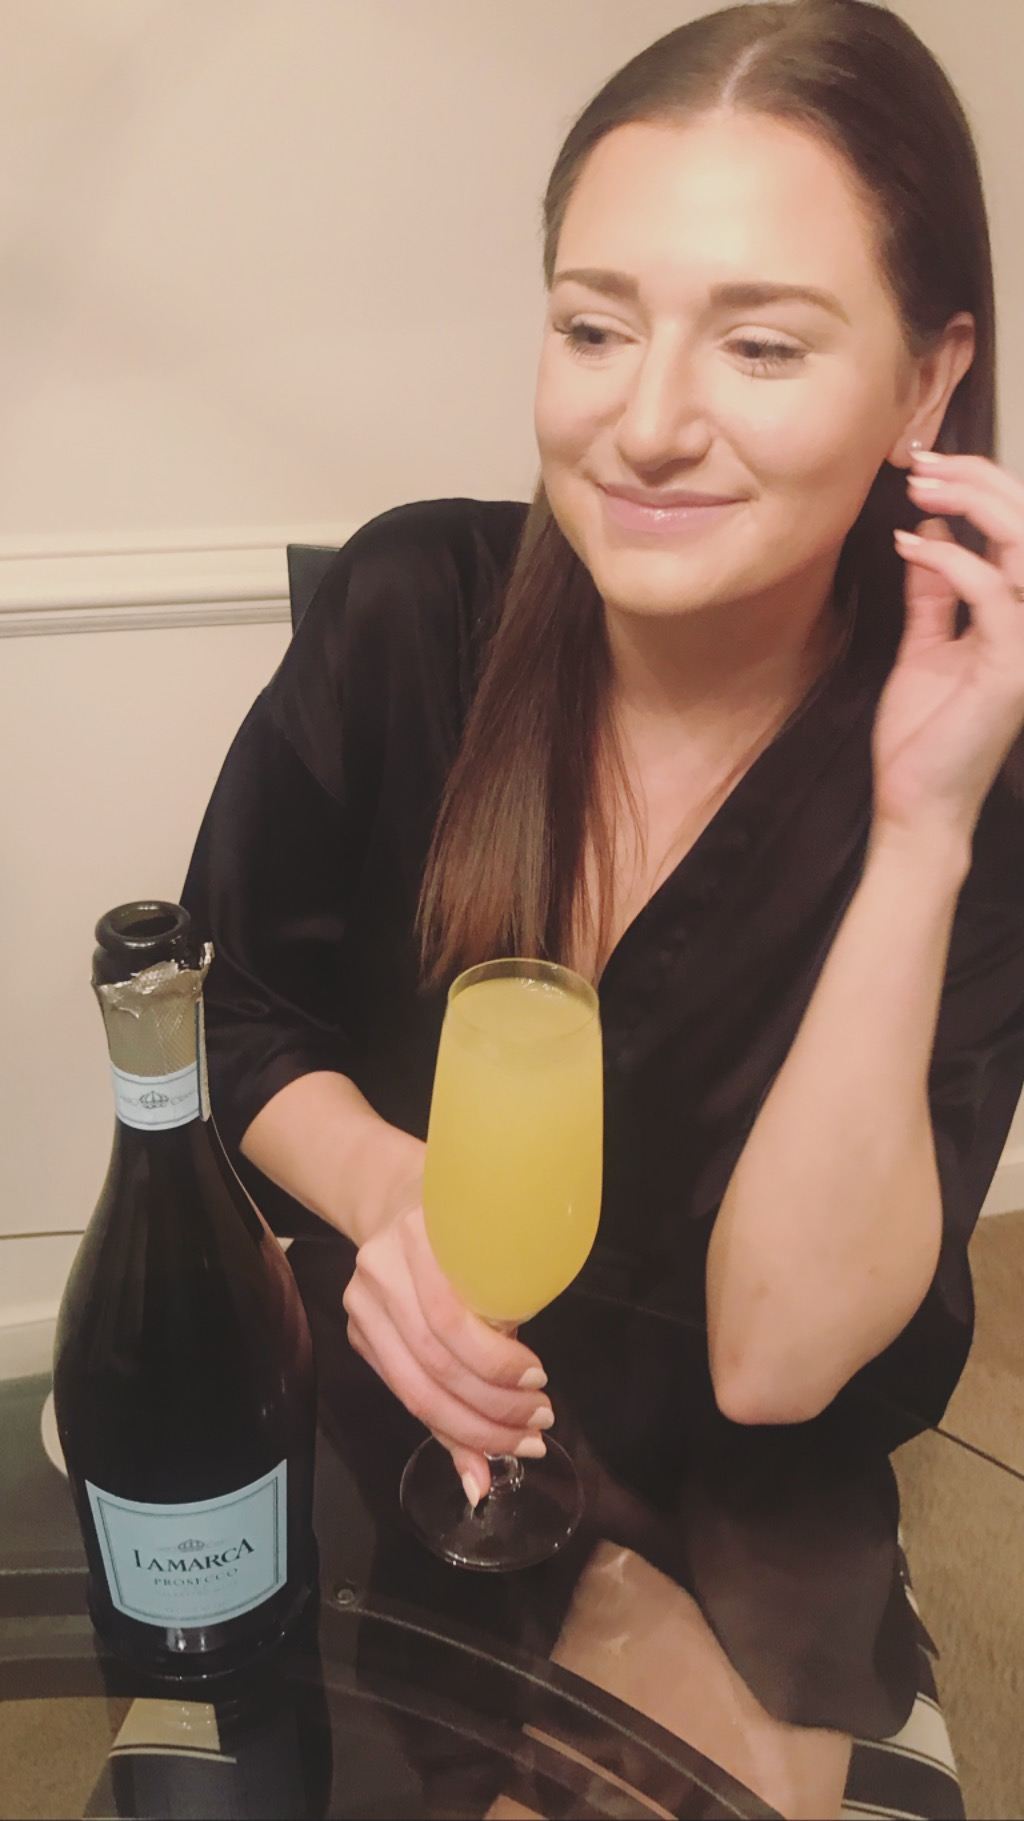 Mimosas for all! - Did you even indulge if prosecco wasn't involved?!